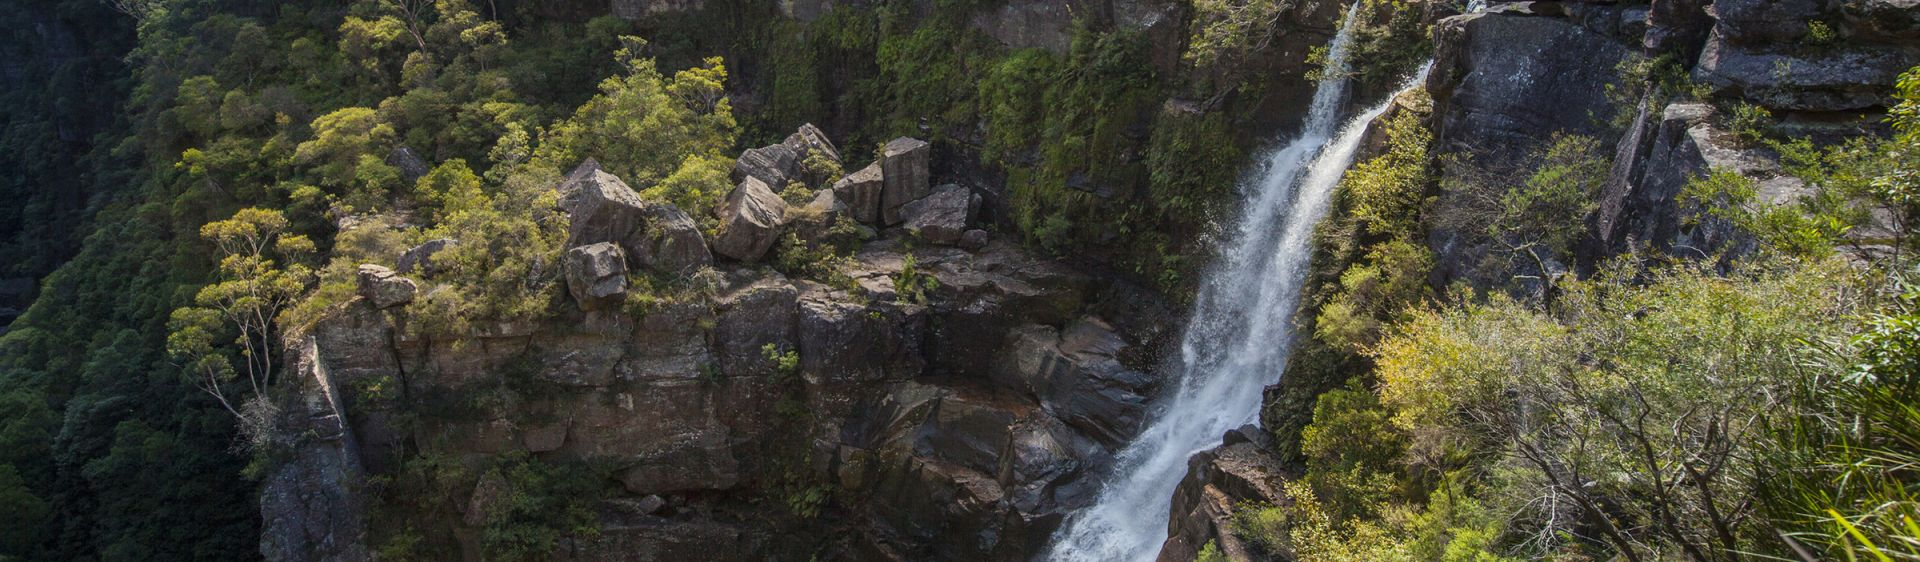 Minnamurra Rainforest waterfalls - Kiama